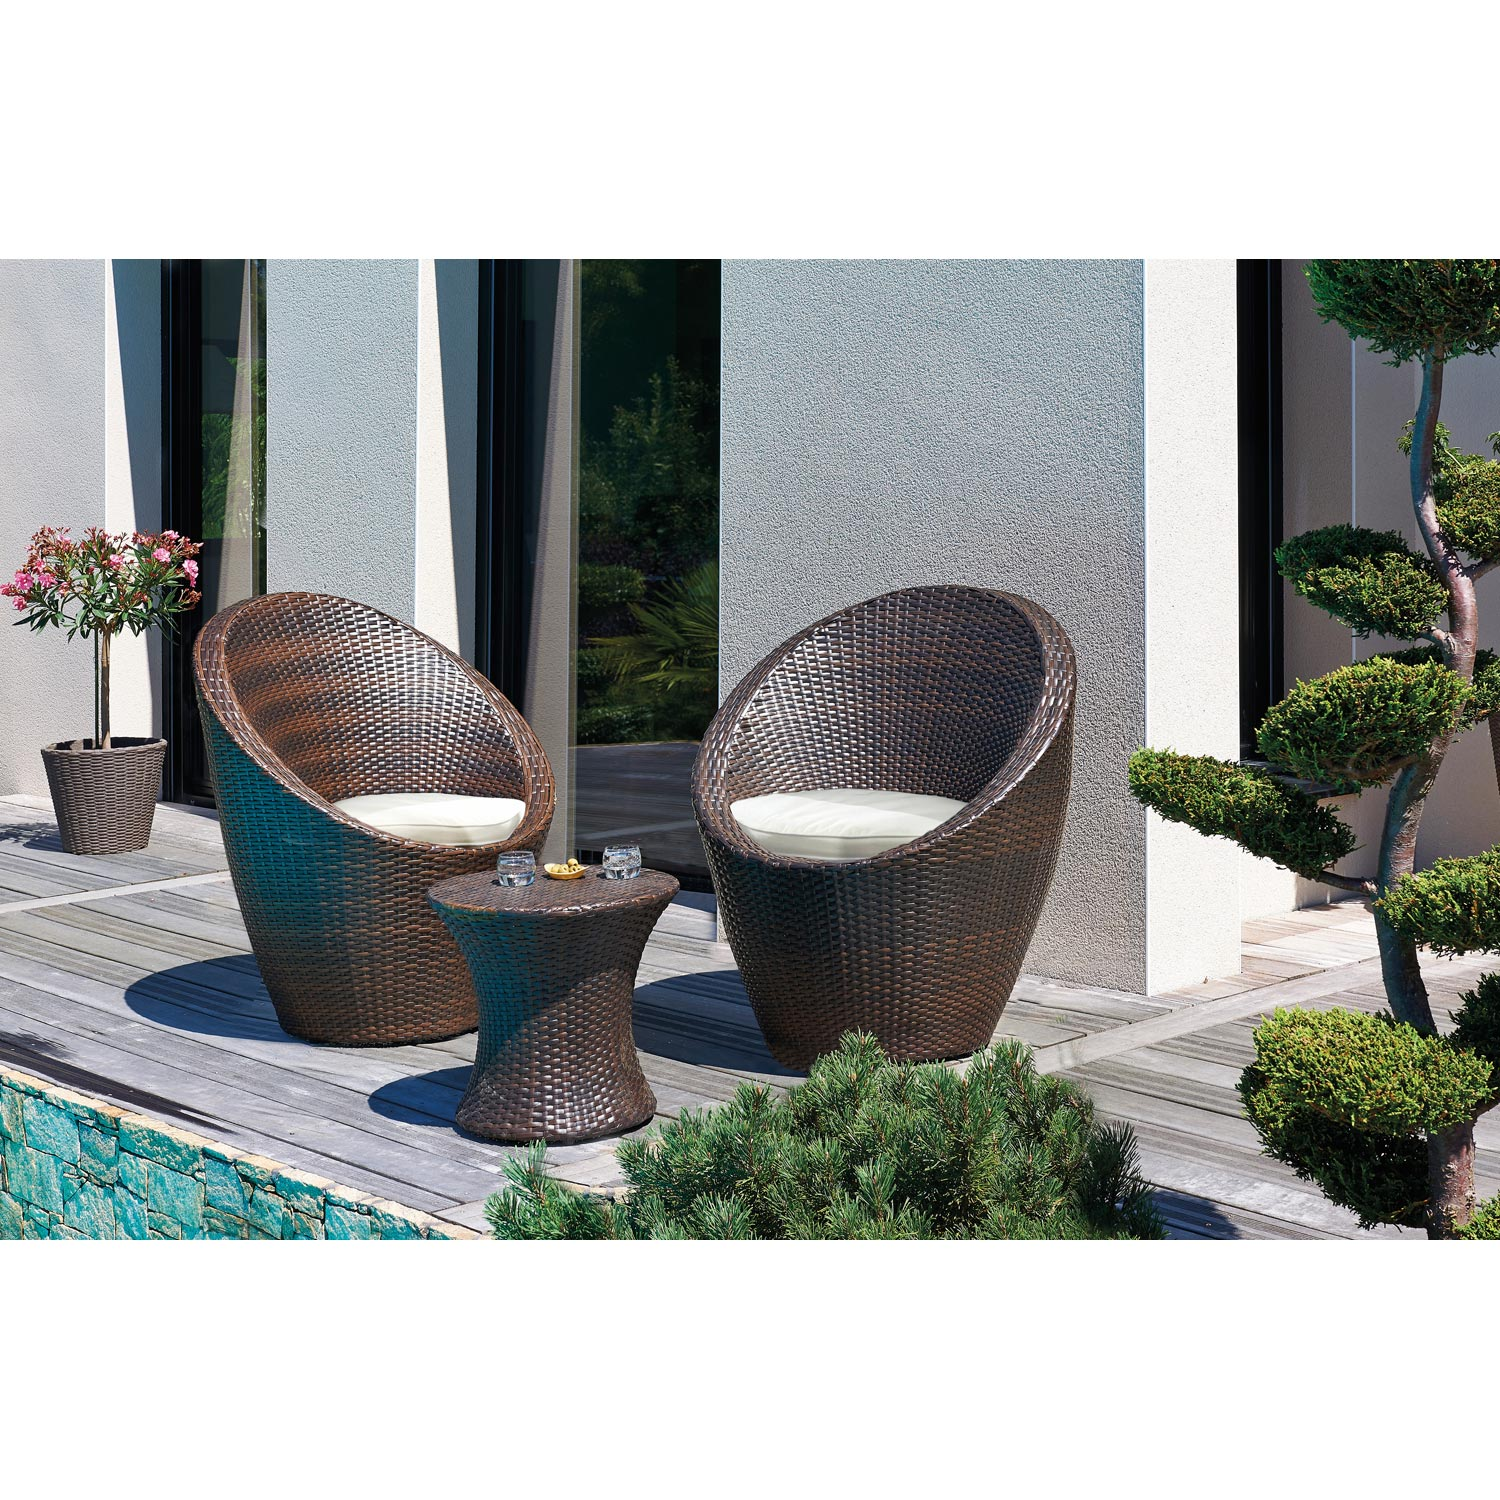 Salon bas de jardin totem r sine tress e chocolat 1 table - Salon de jardin couvert ...